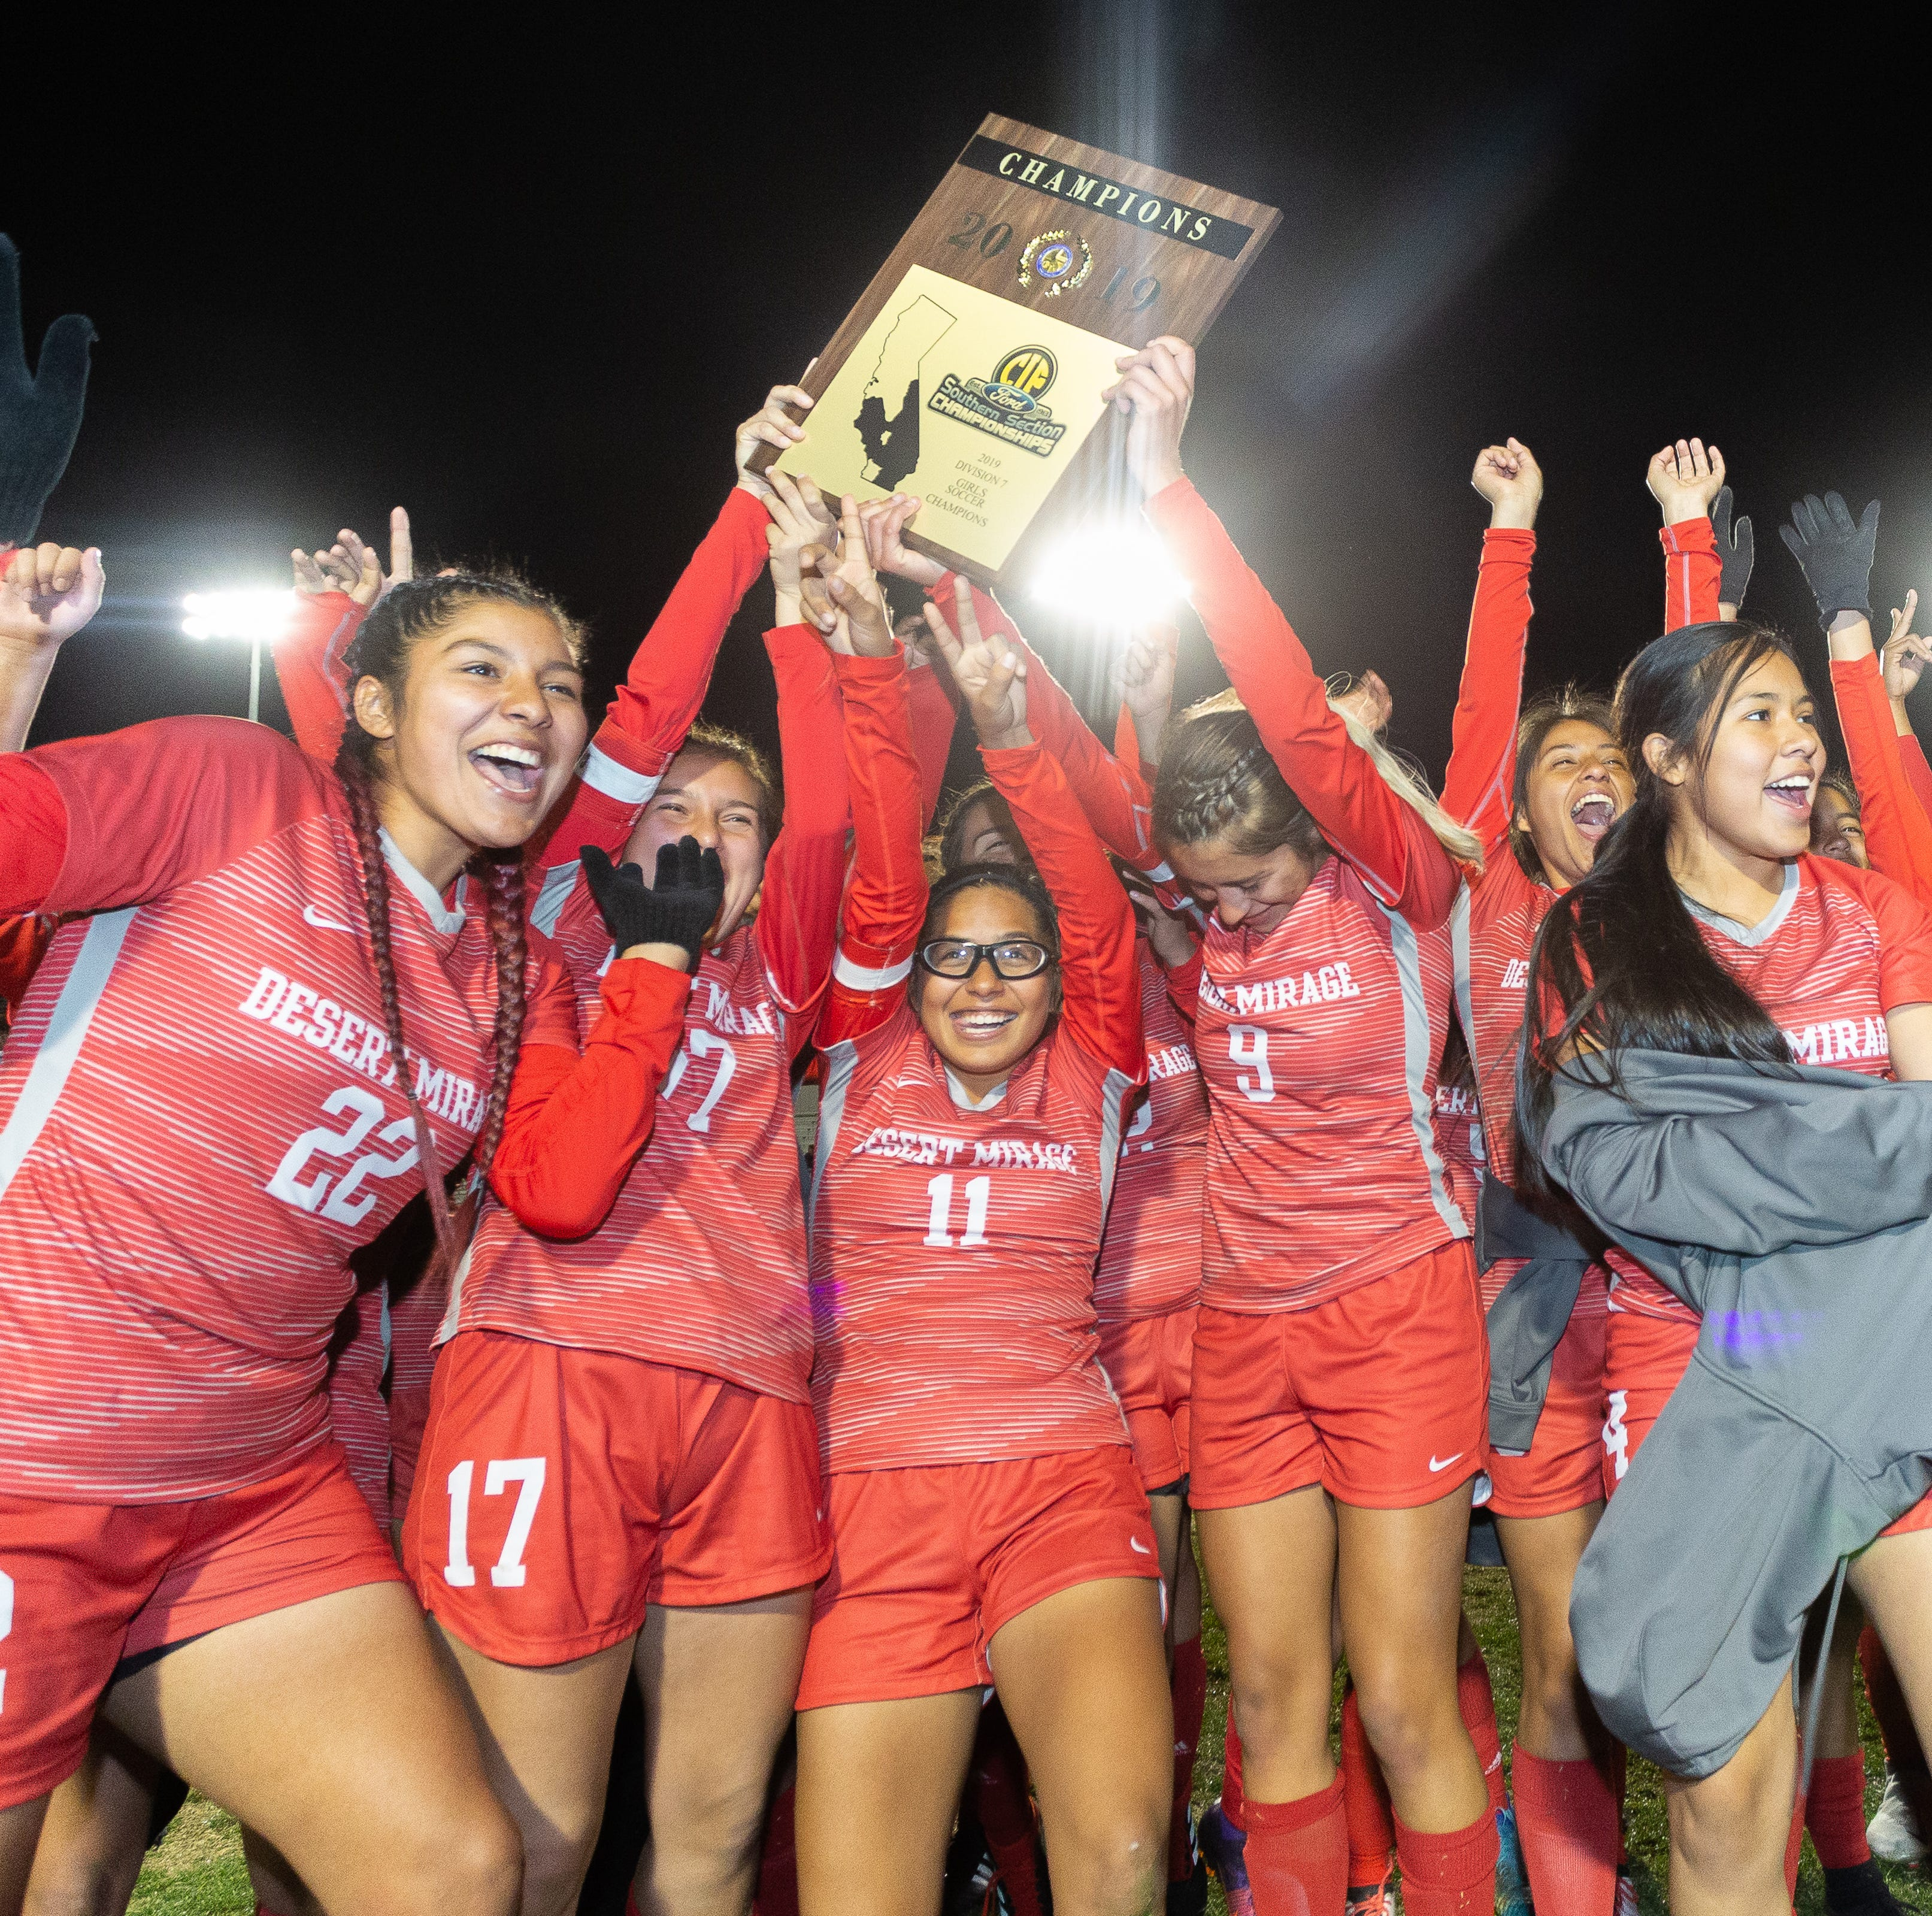 Desert Mirage wins first girls' soccer CIF title in Coachella Valley history